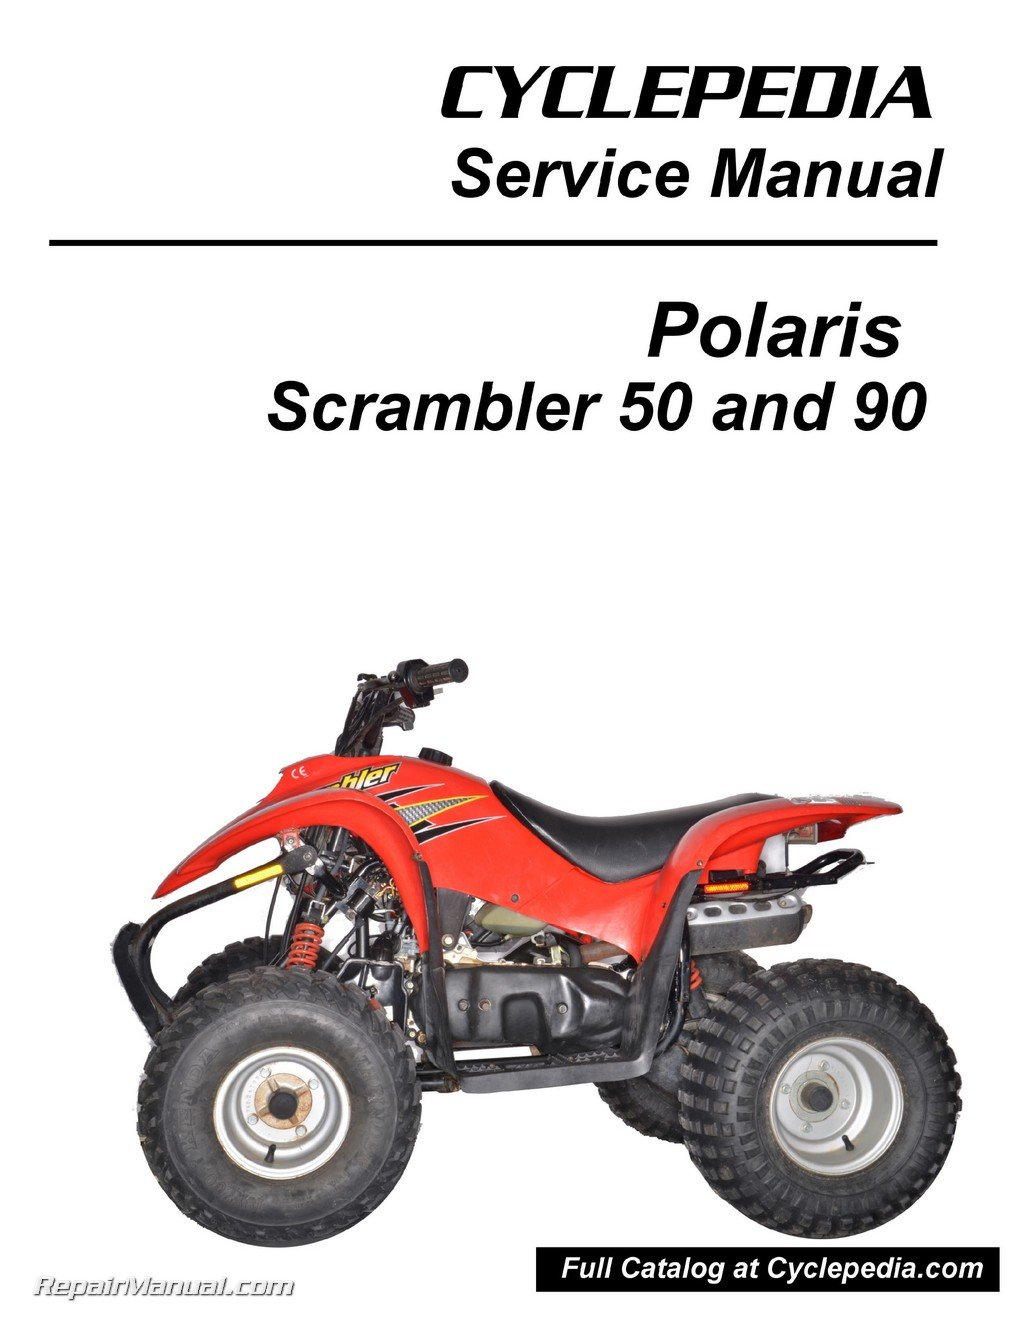 CPP-173-P Polaris 50cc 90cc Scrambler ATV Print Service Manual By  Cyclepedia: Manufacturer: Amazon.com: Books